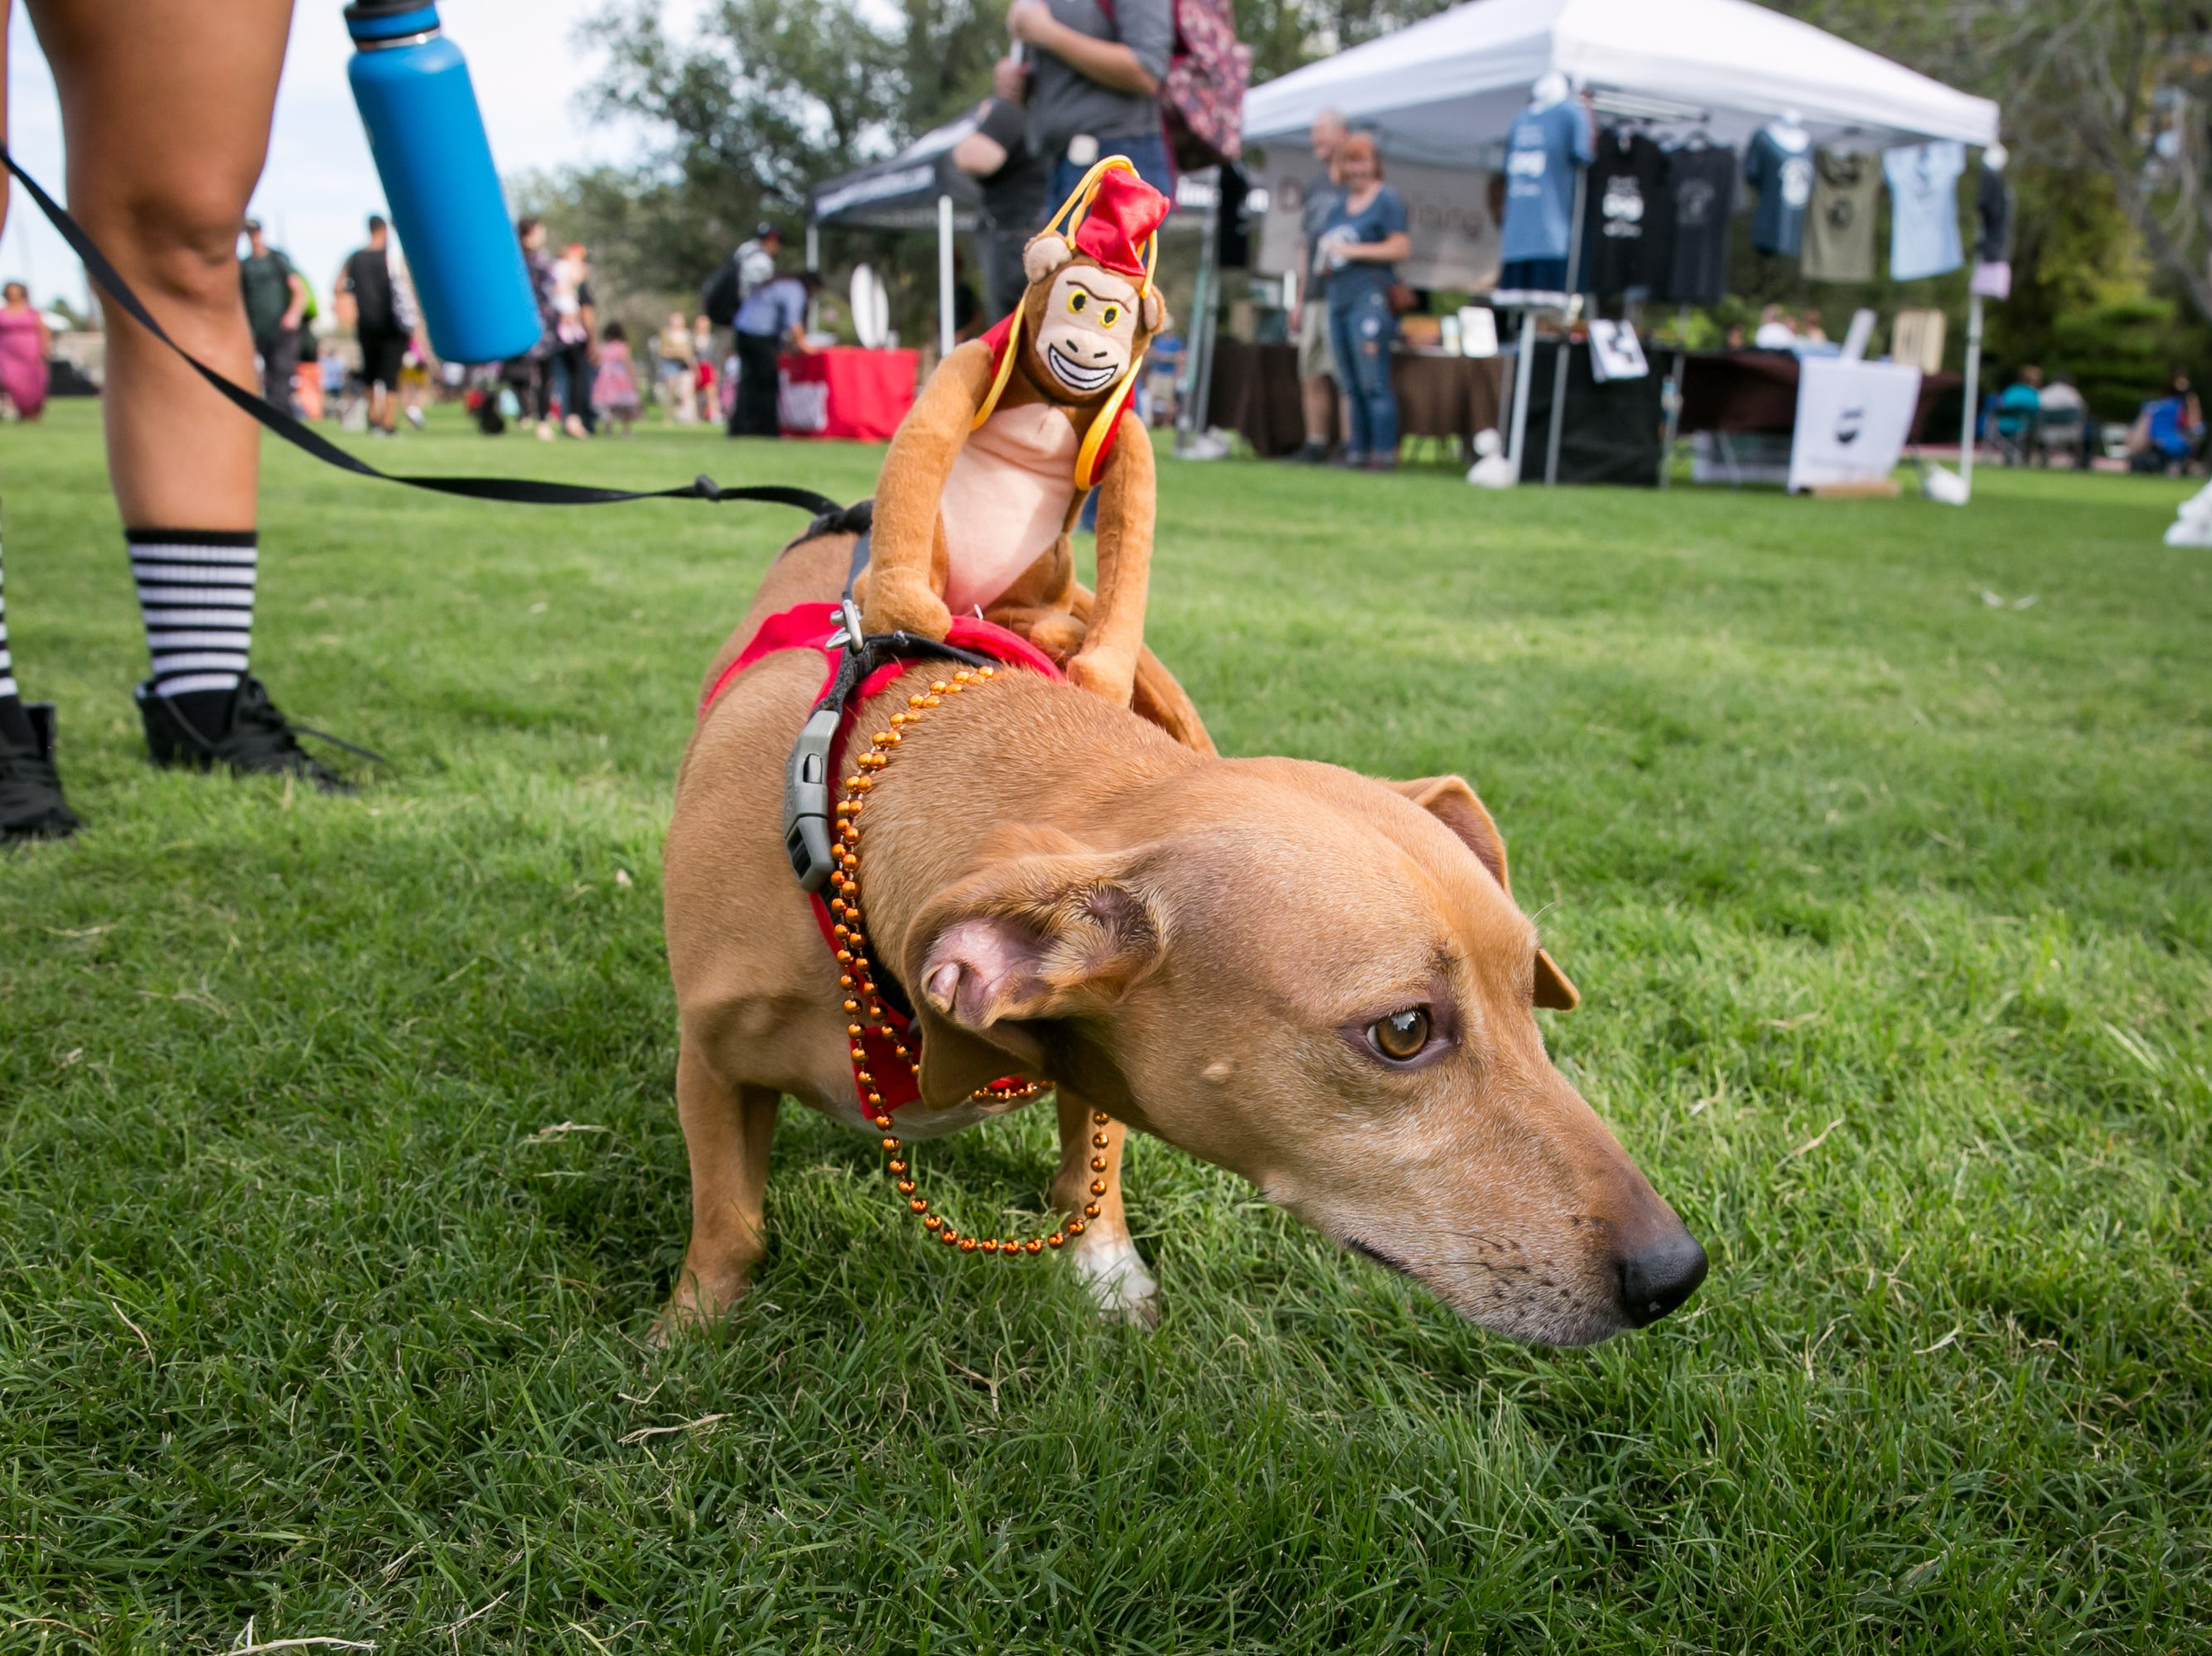 This dog monkeyed around during Howl-o-Ween at Hance Park on Sunday, October 28, 2018.